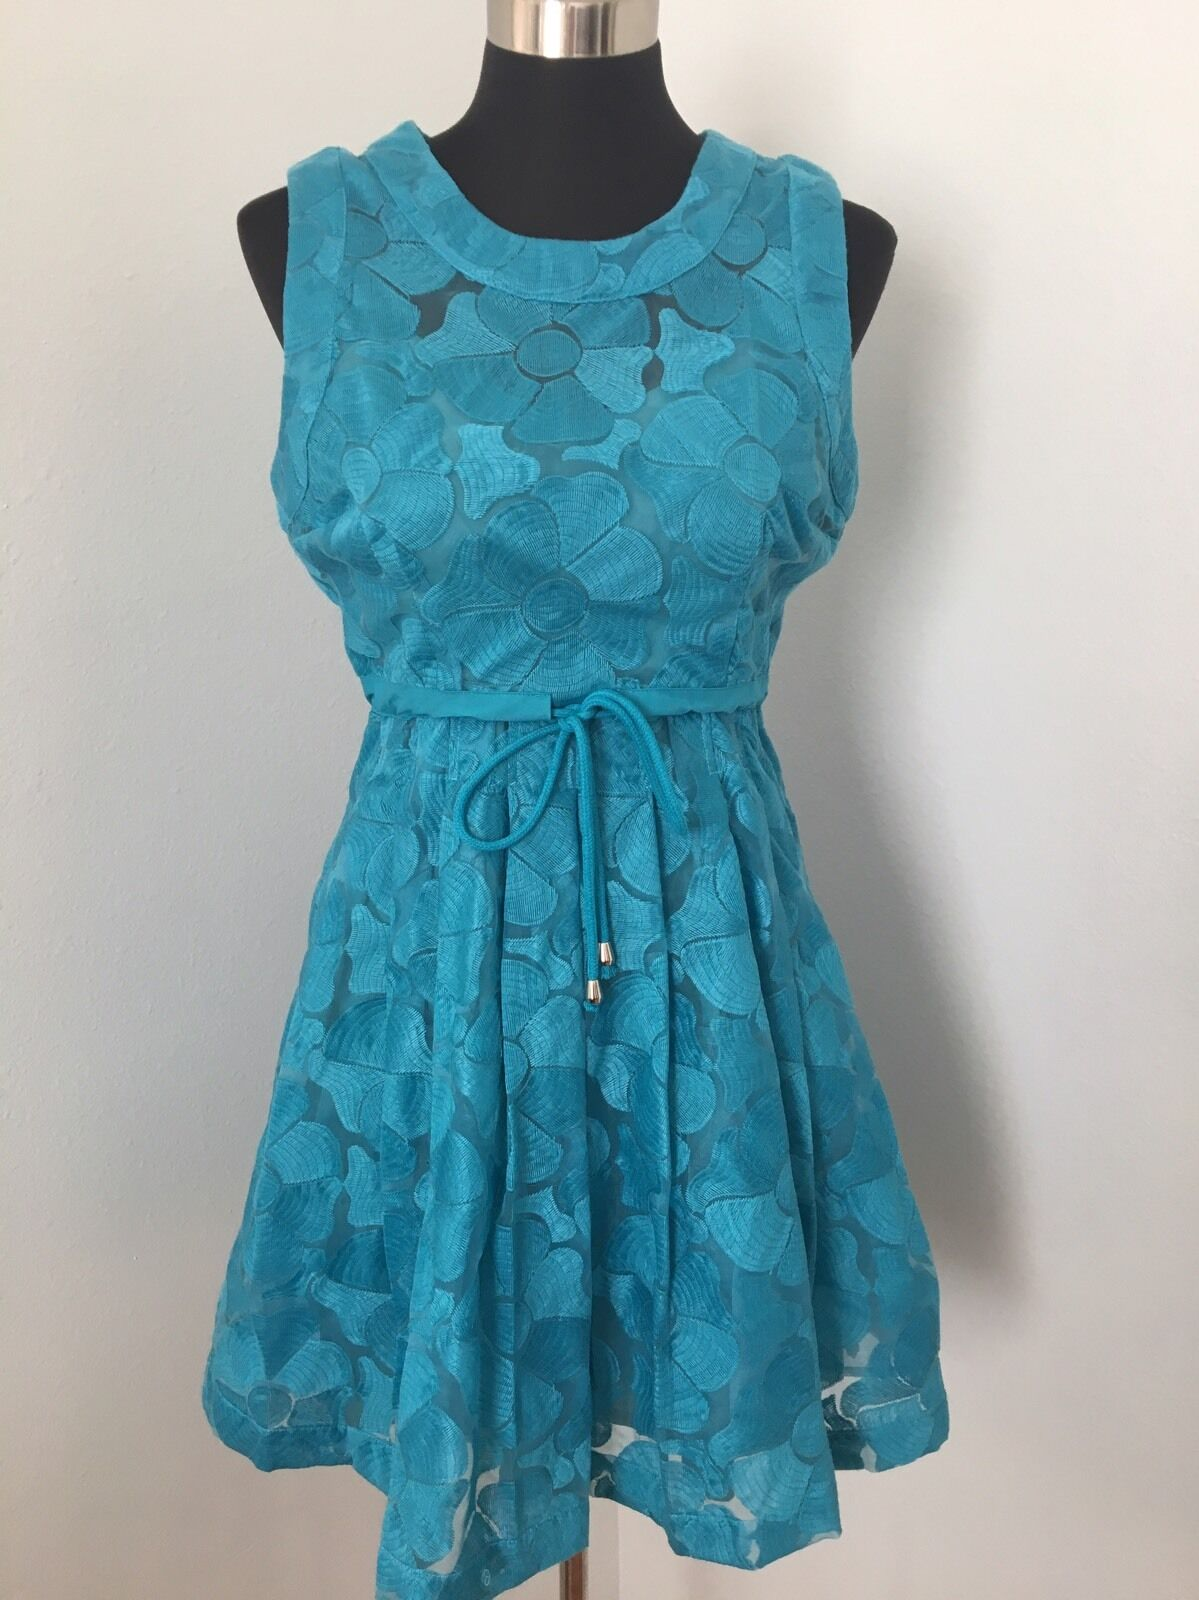 Anthropologie Plenty Tracy Reese Dress 6 Del Mar Fit Flare Floral Turquoise bluee